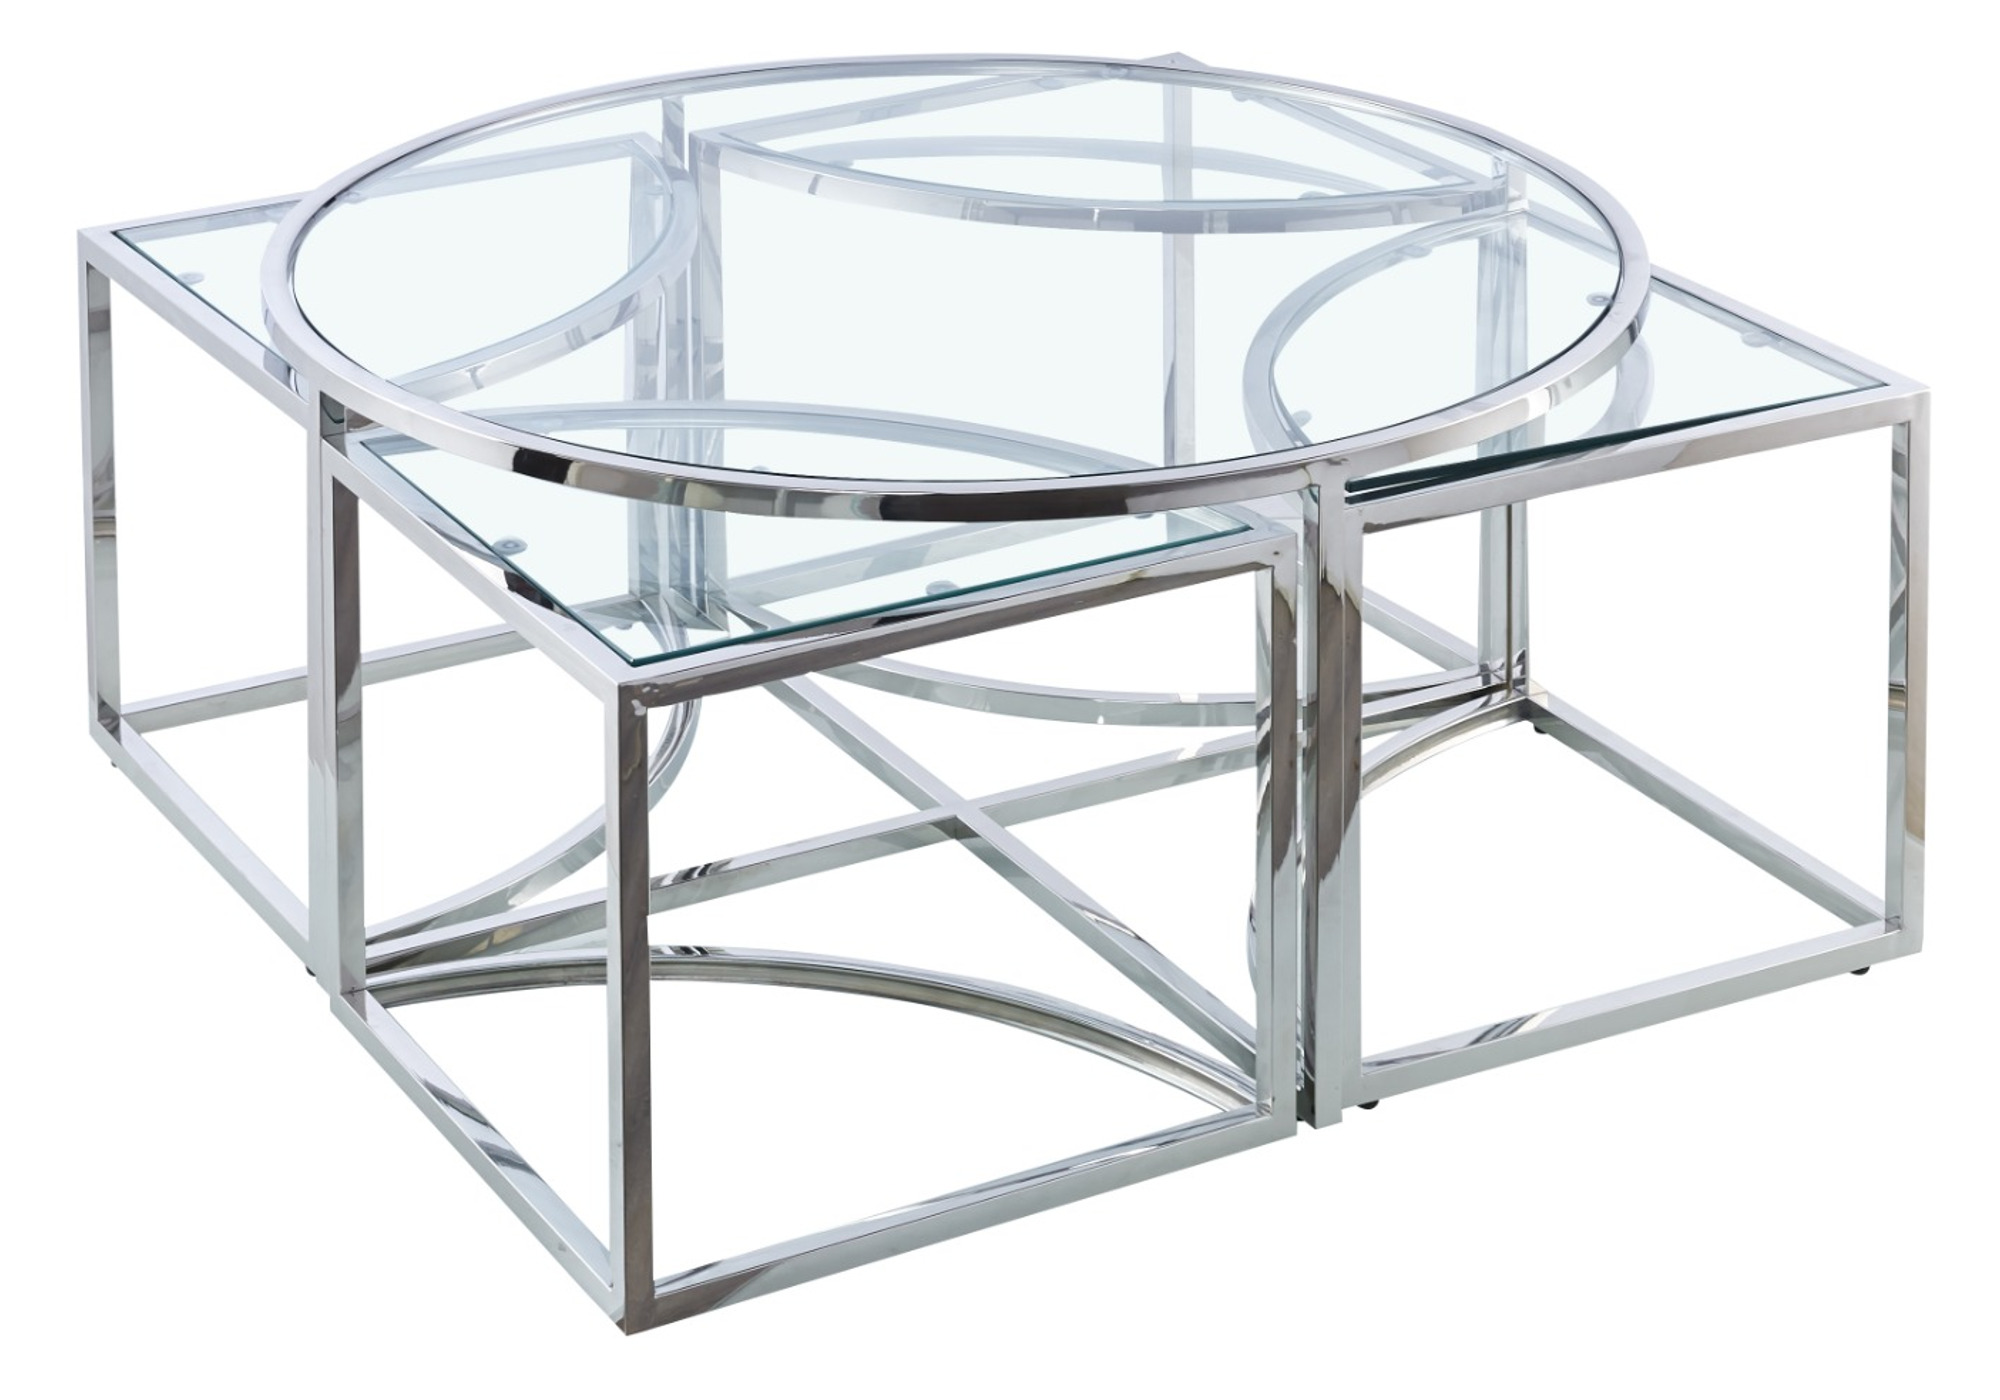 Table basse ronde design chromé verre PIO